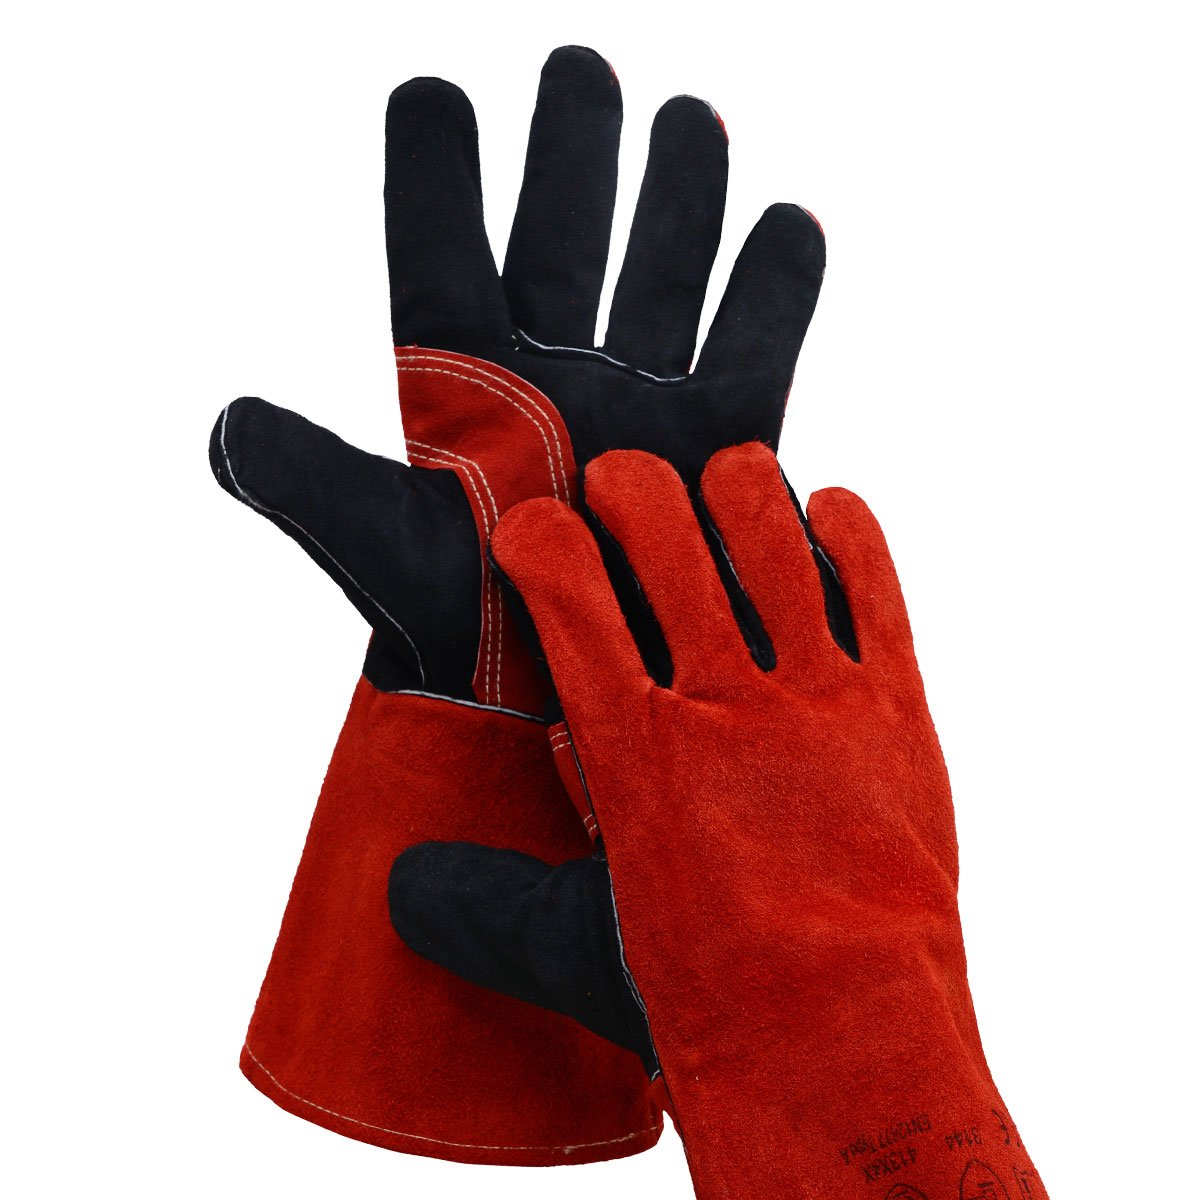 Leather Welding Gloves BOWOO Stitching Heat Resistant Glove for Tig/Mig/Stick/Gardening 14IN,1 pair (Red-Black)